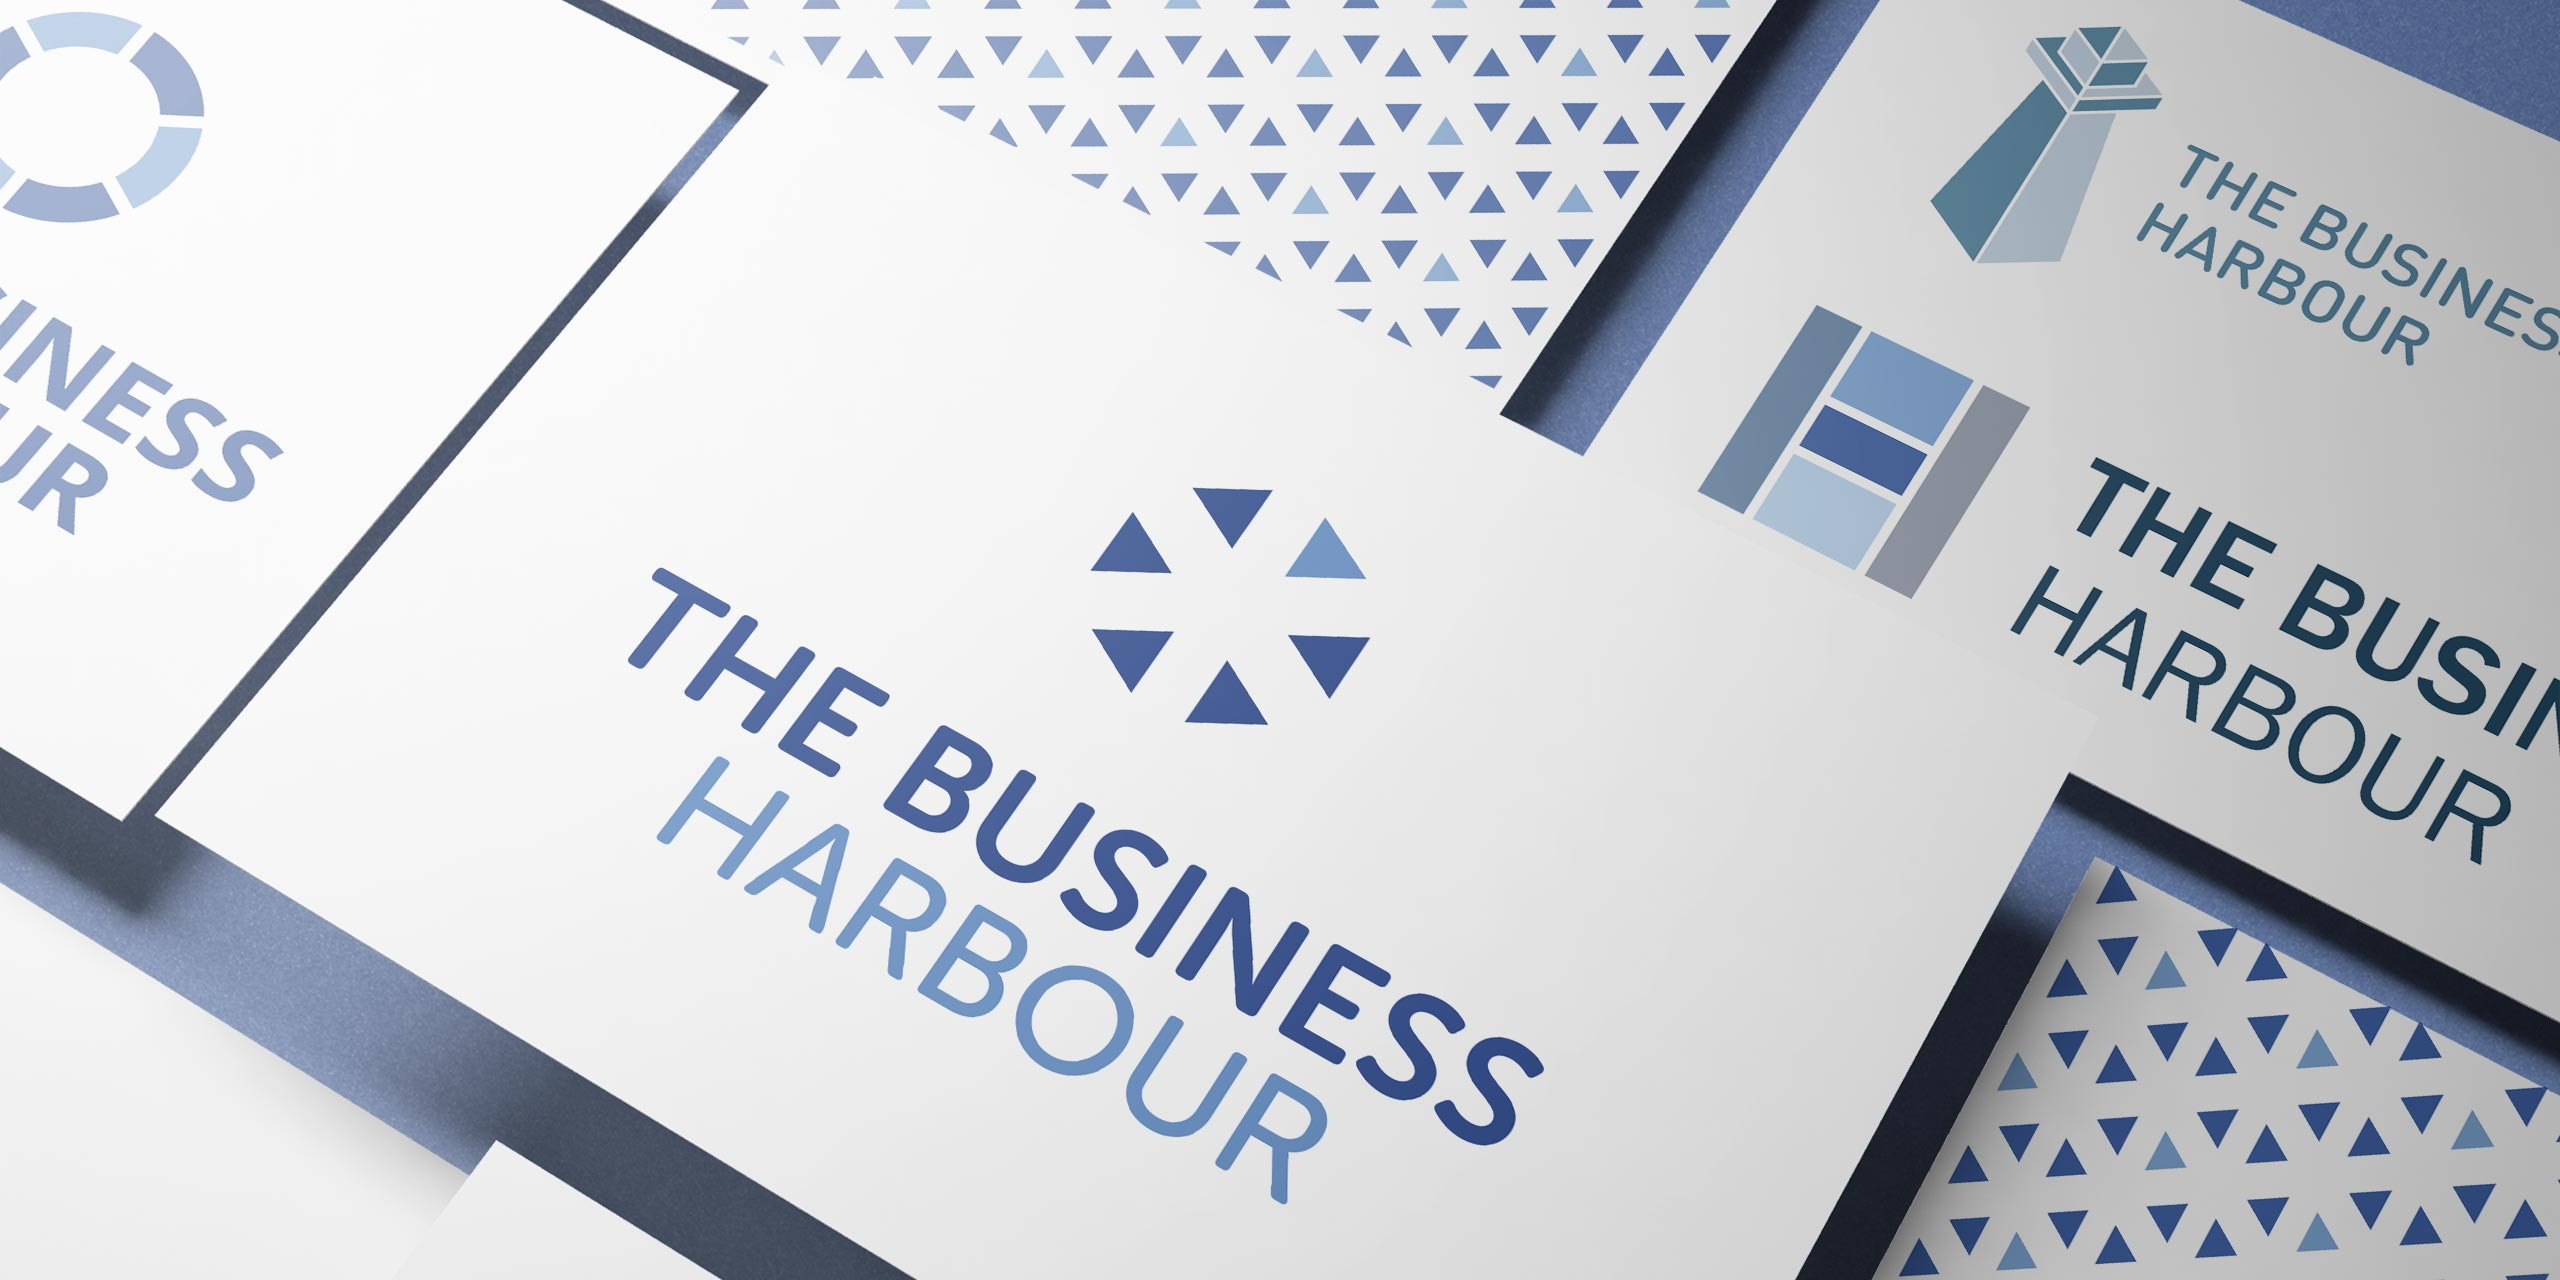 The Business Harbour - Visual Exploring